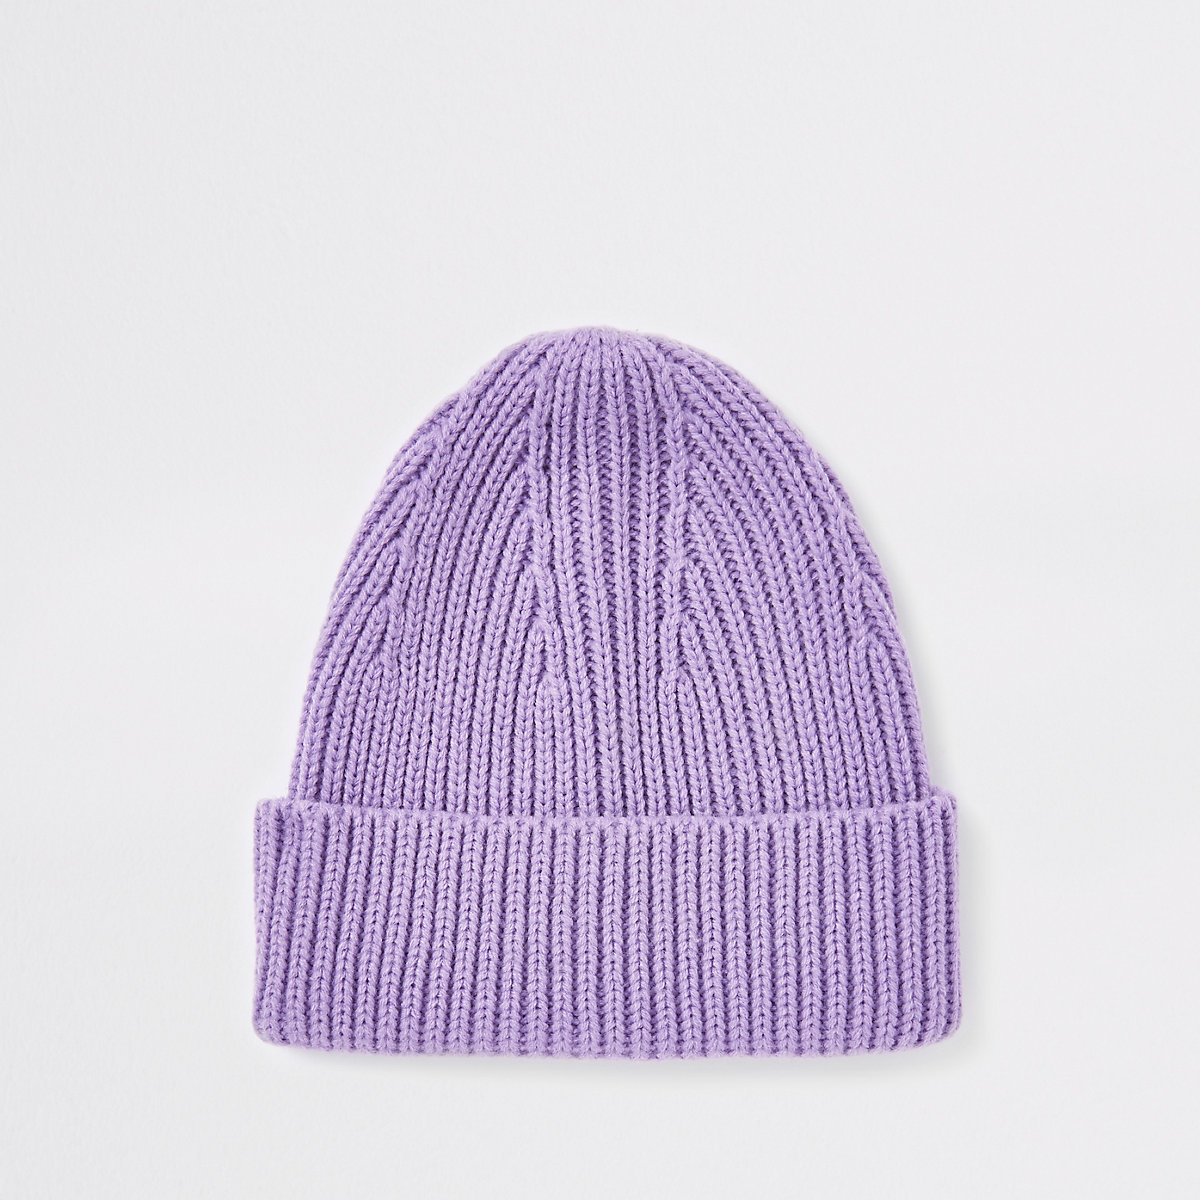 Purple fisherman beanie hat